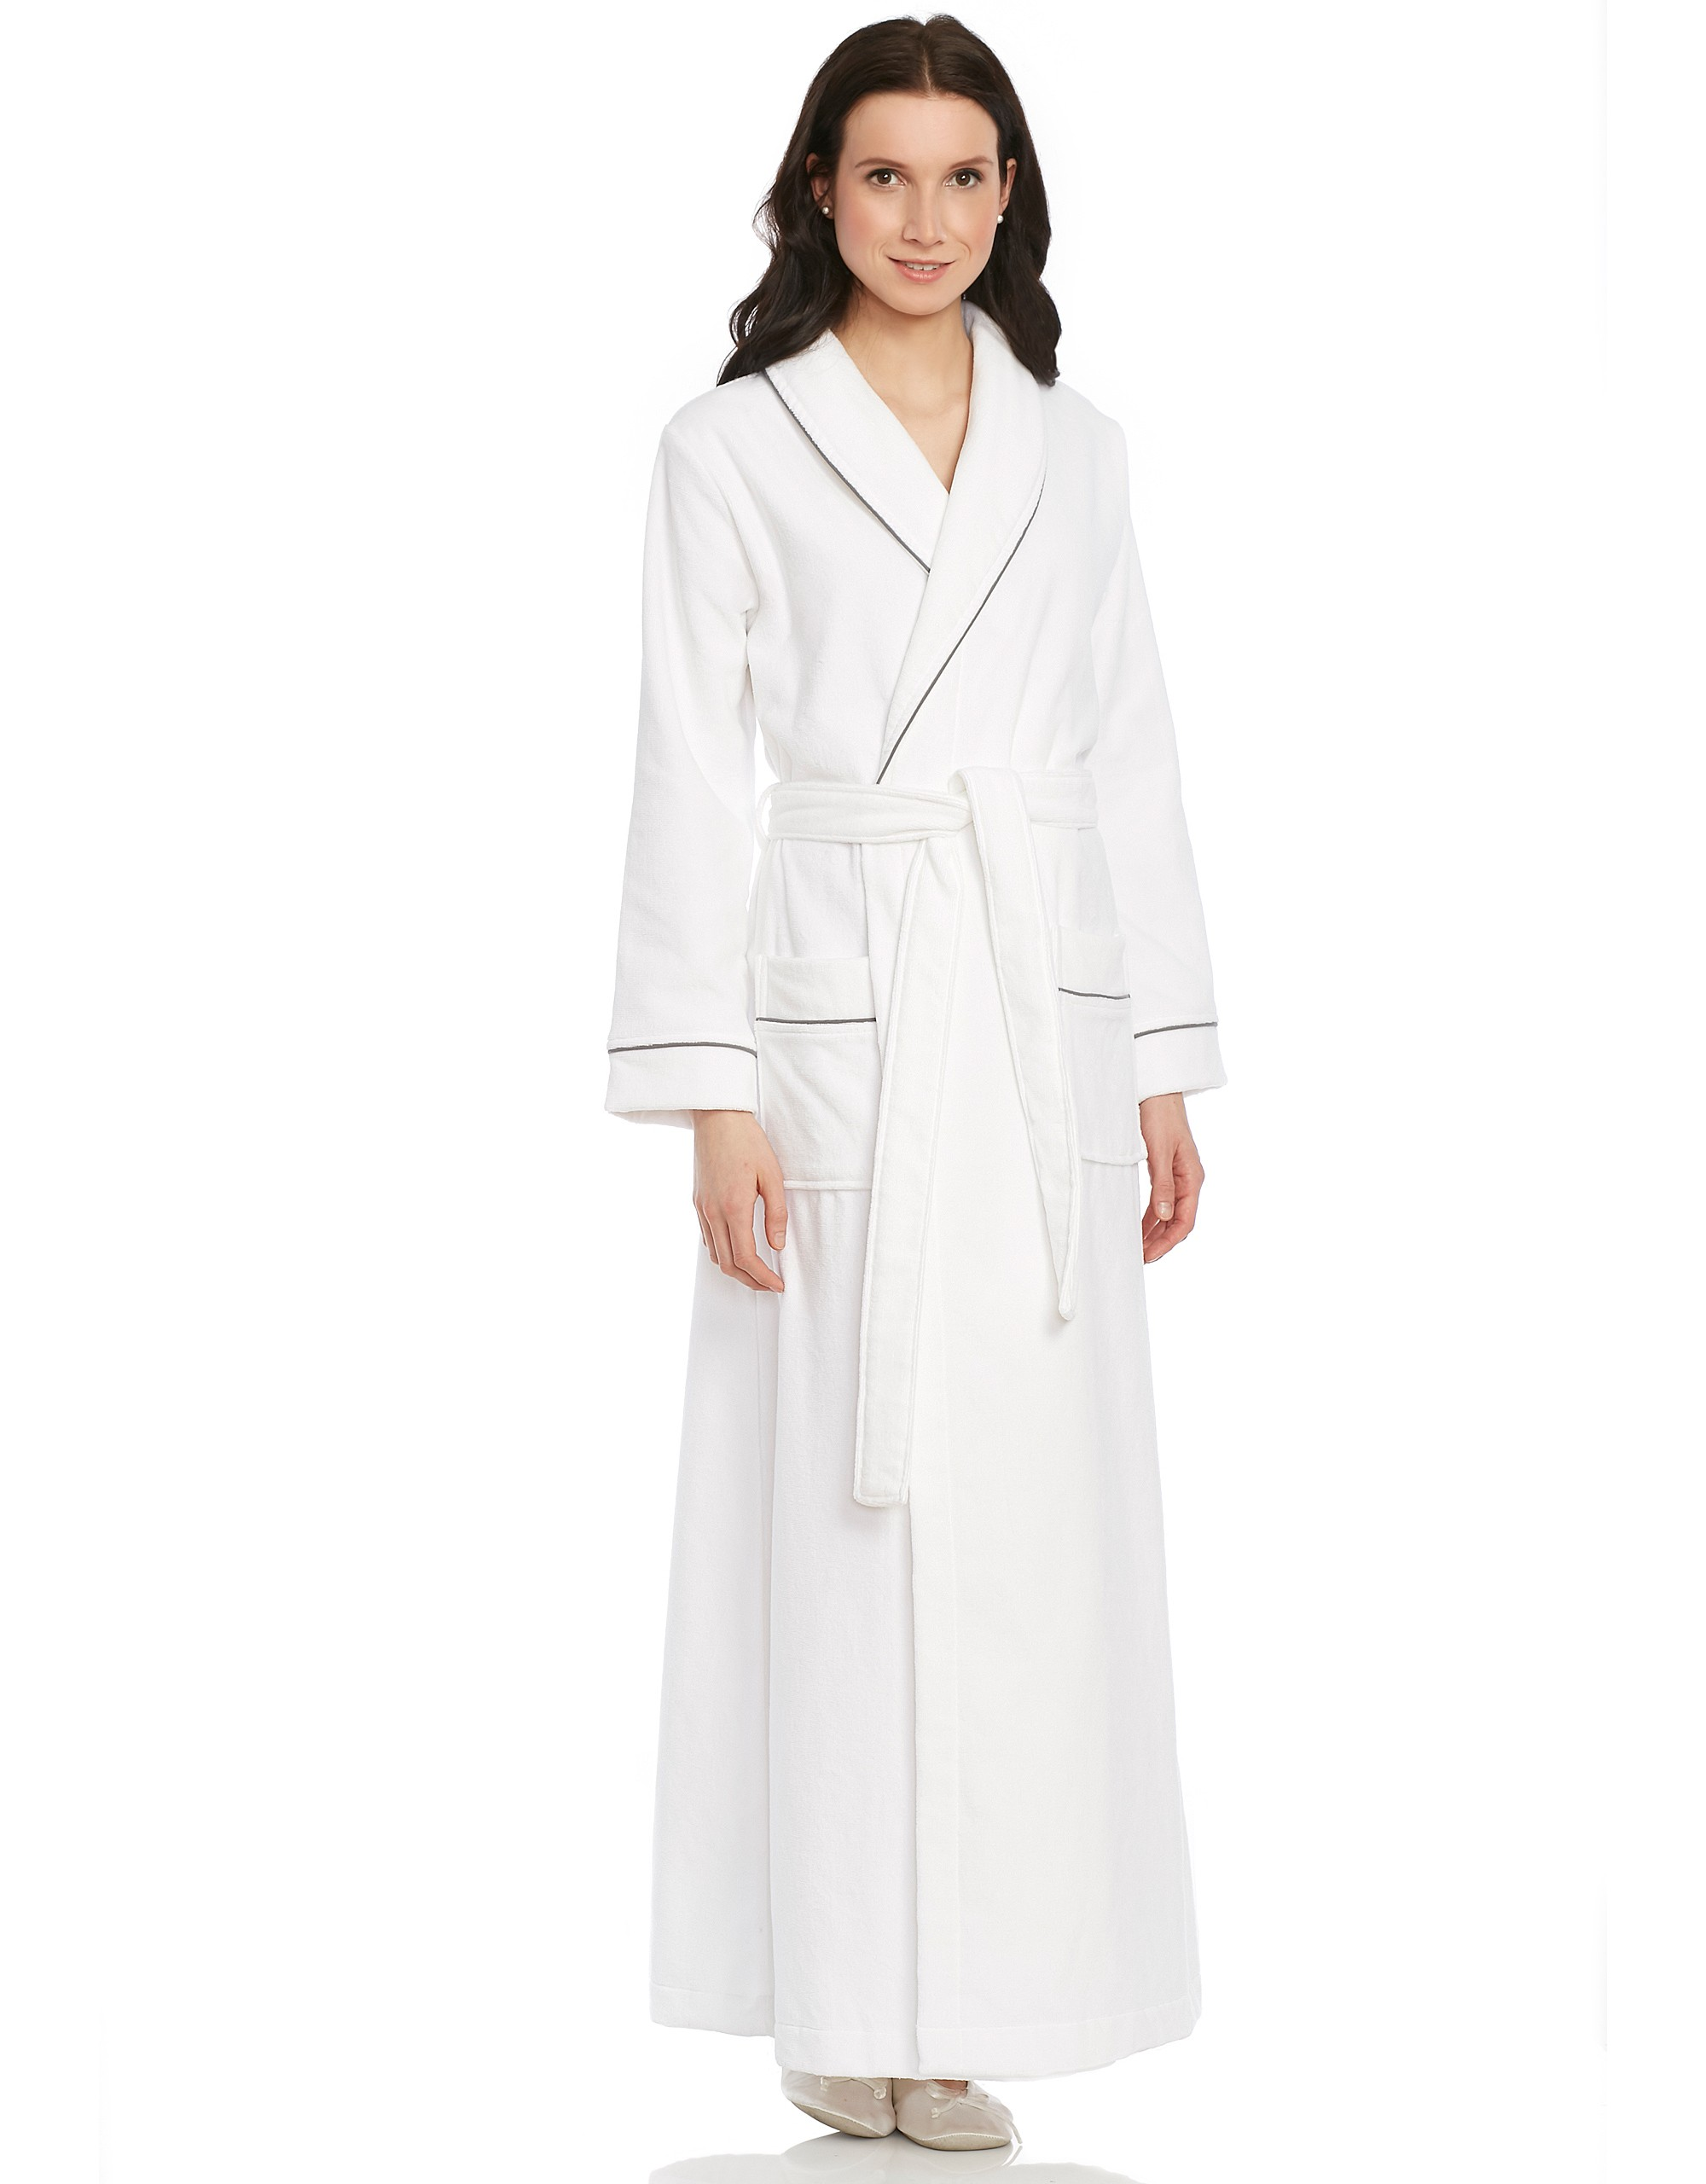 5854728312 Terry Wrap Belted Bathrobe with Piped Trim at The Lingerie Shop New York